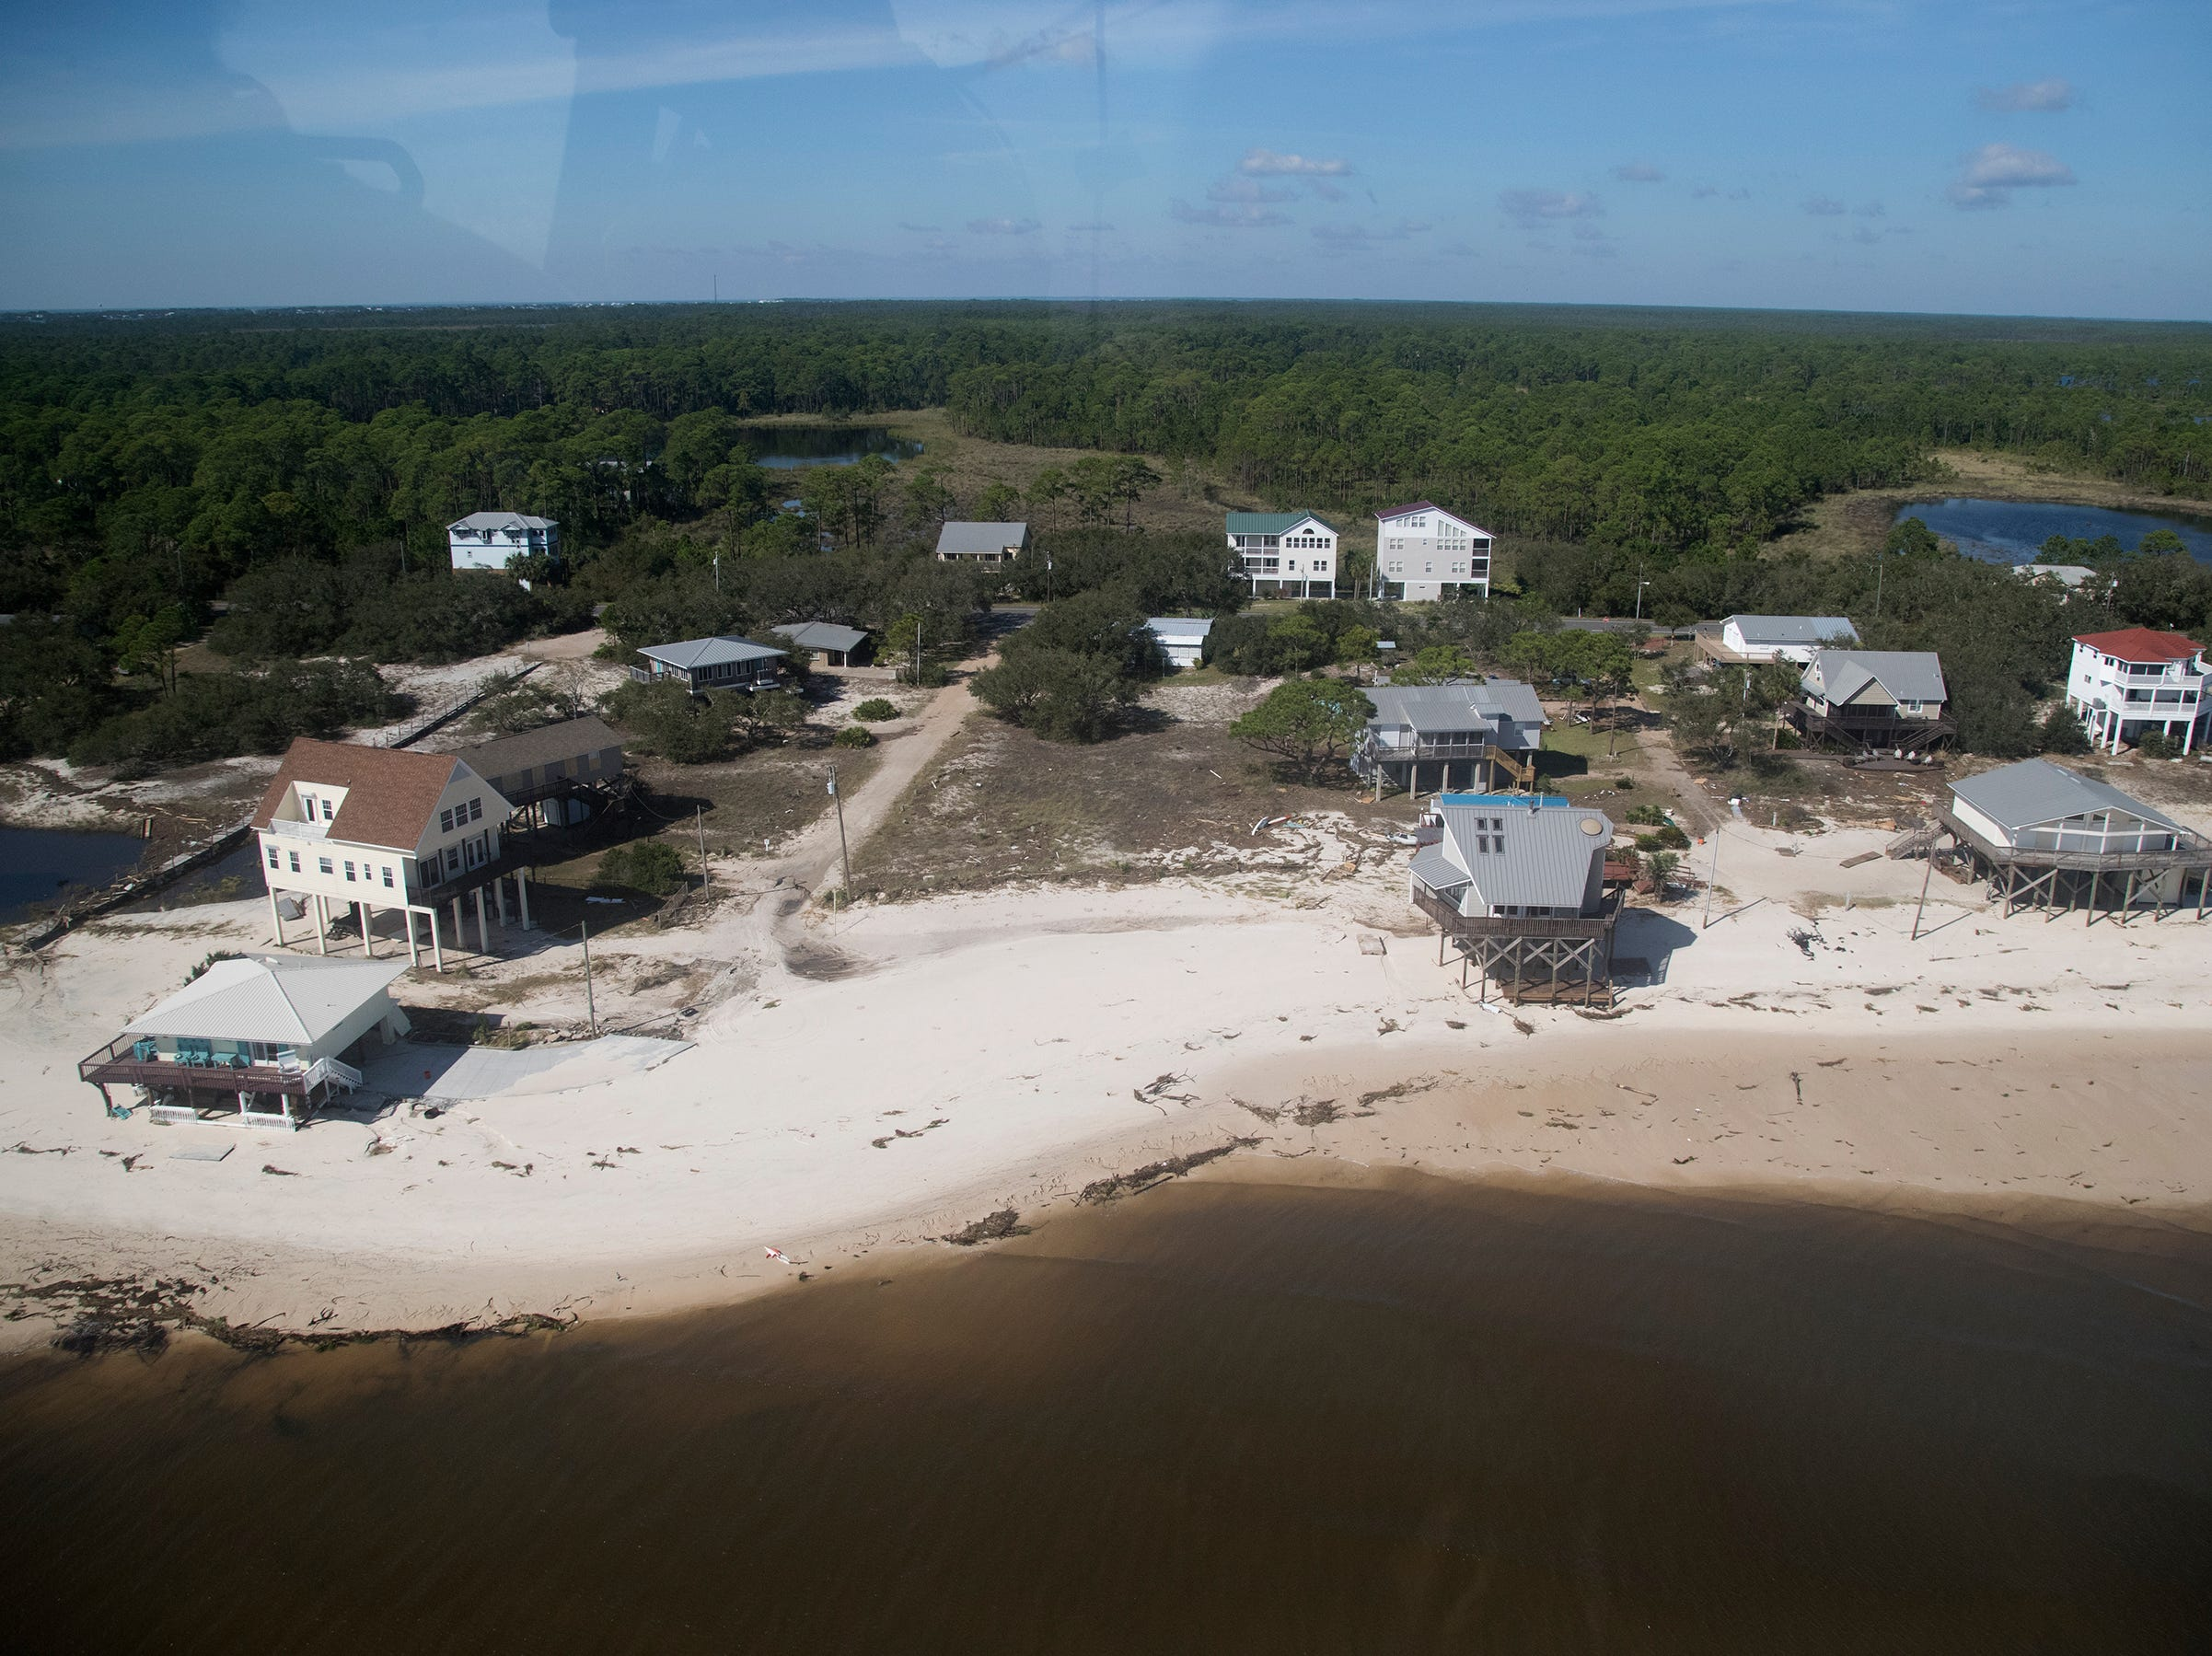 KINFAY MOROTI/THE NEWS-PRESS… Hurricane Michael damaged several homes on Alligator Point in Franklin County, Florida. (Picture date: 10/11/18).